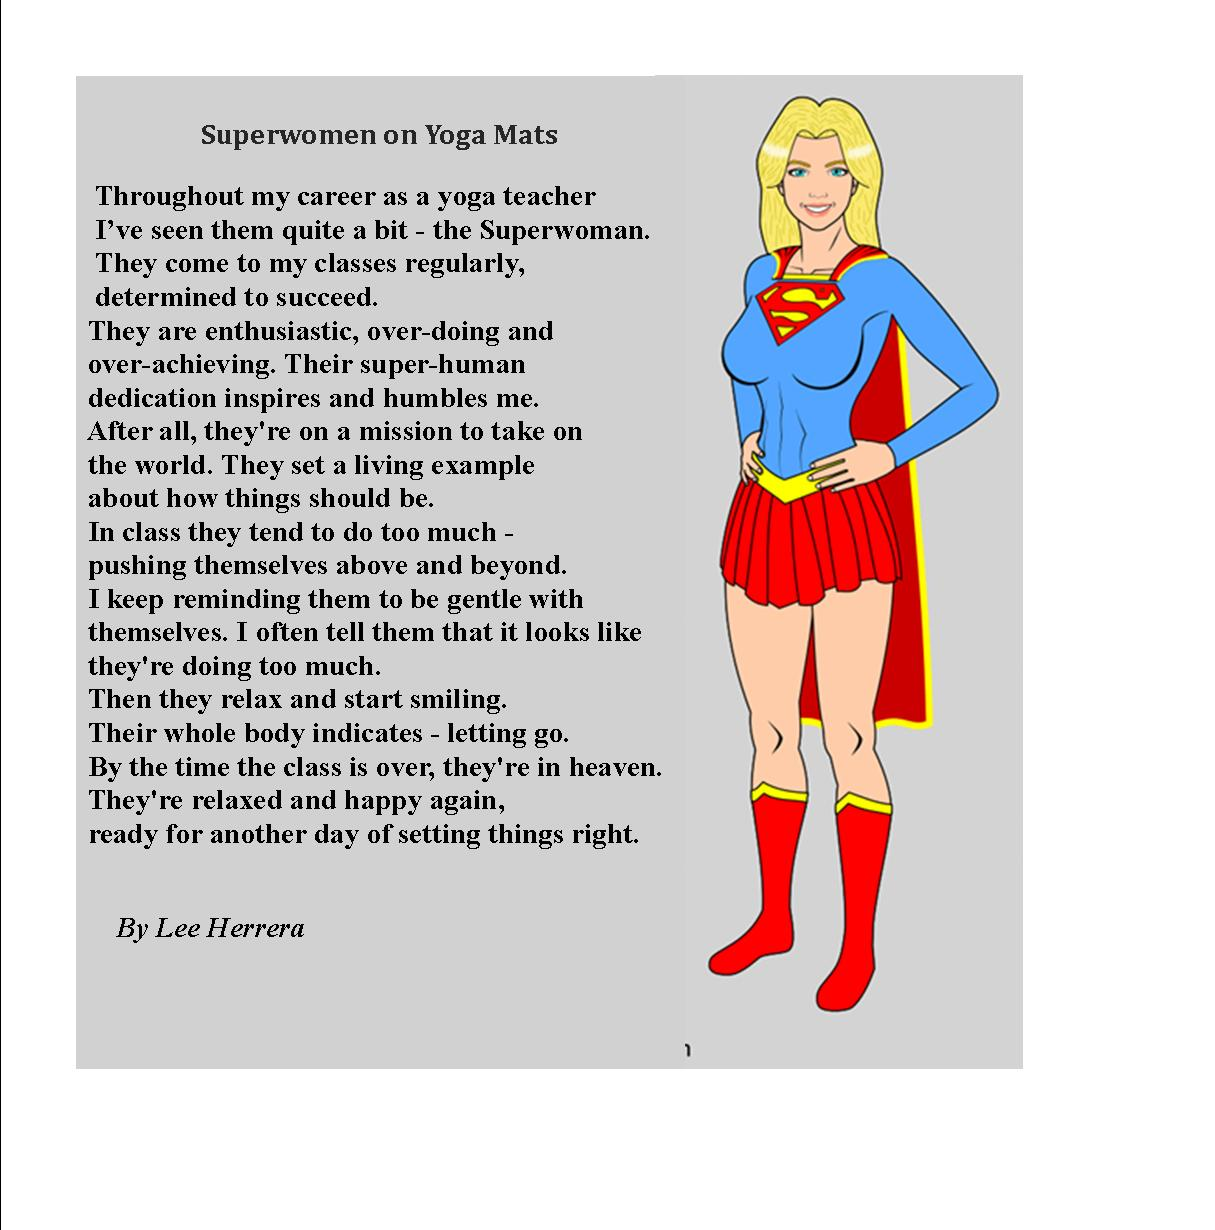 Superwomen on Yoga Mats